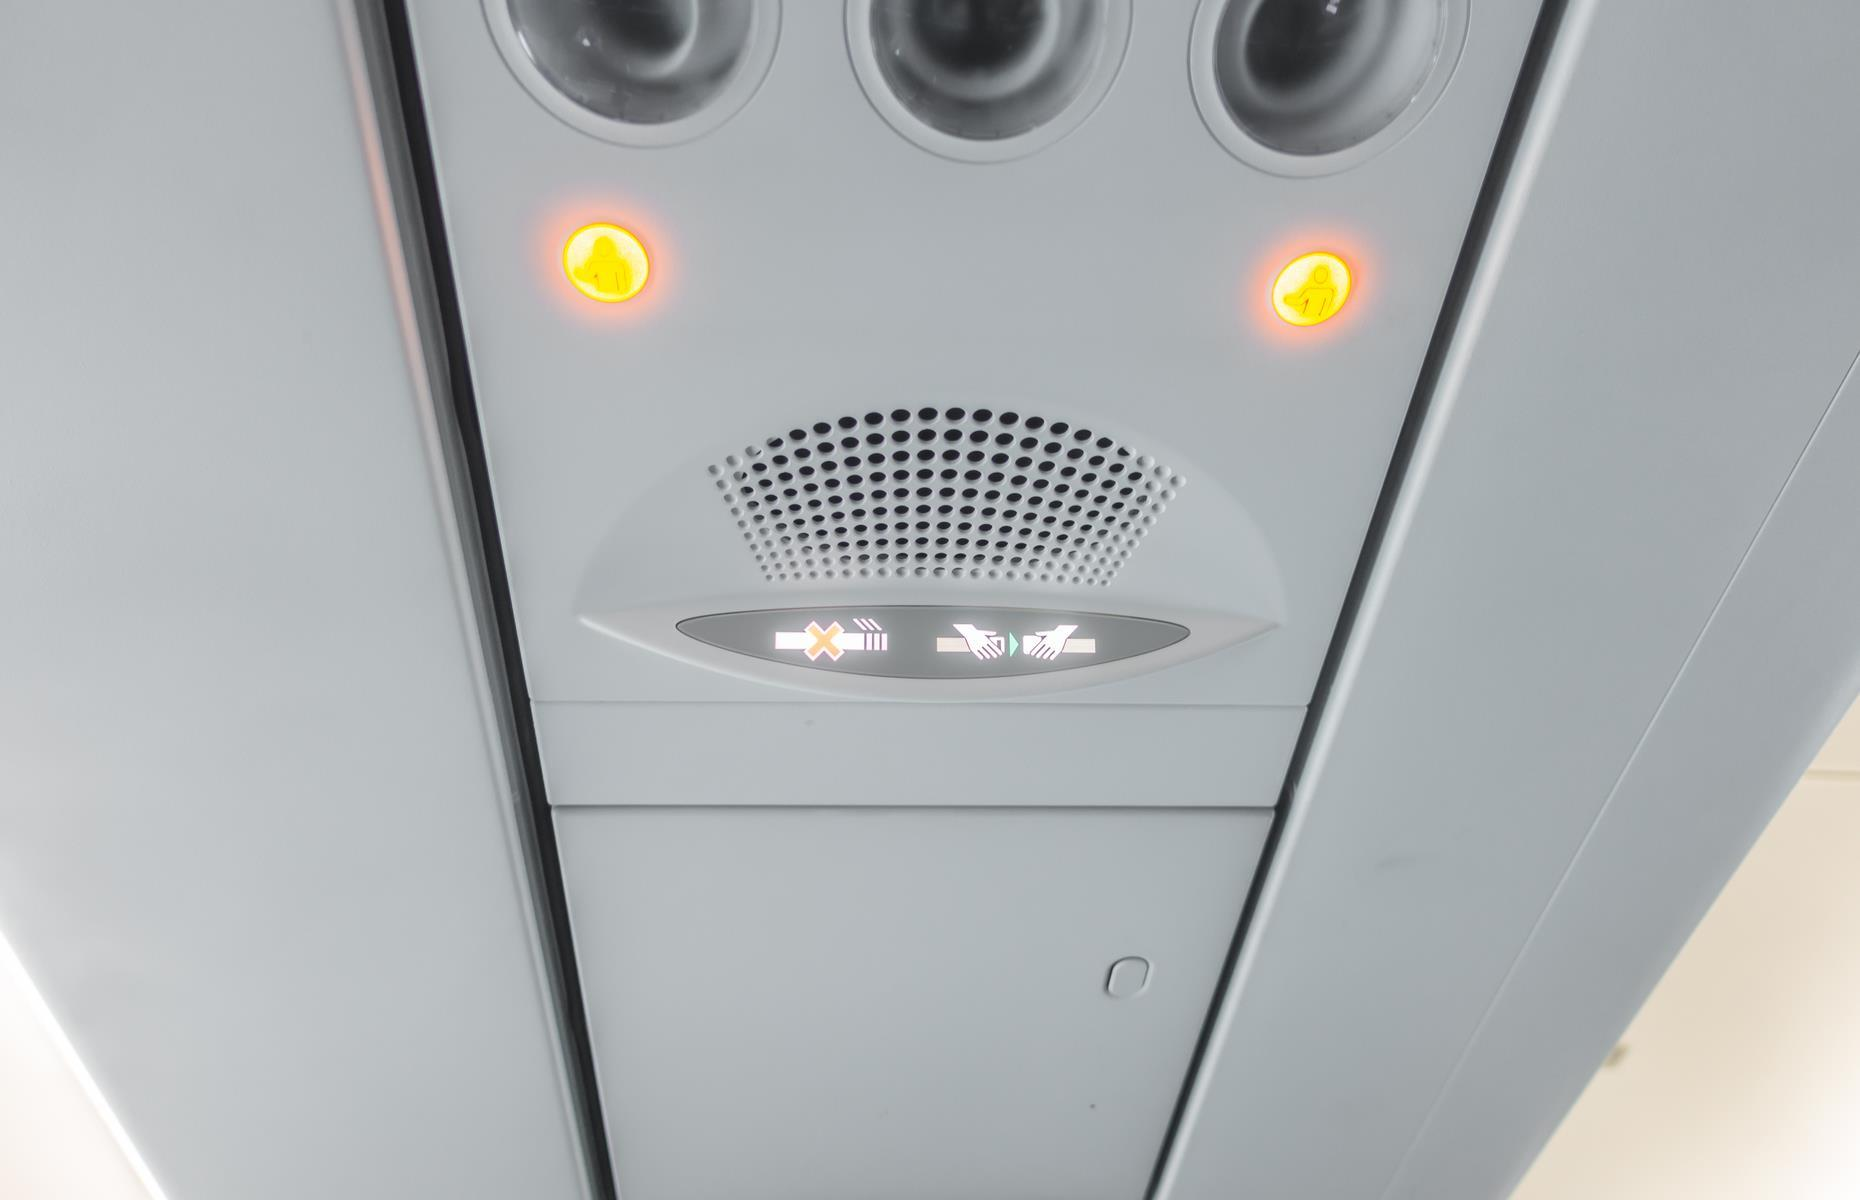 """Slide 20 of 63: """"The lights should always go out before take-off or landing if it's dark outside. The cabin needs to reflect the exterior environment so your eyes don't need to adjust in an emergency situation,"""" says Mandy Smith, former Virgin Atlantic air hostess and author ofCabin Fever,a behind-the-scenes account of being an air hostess.  Discover more amazing facts about the world of travel here"""